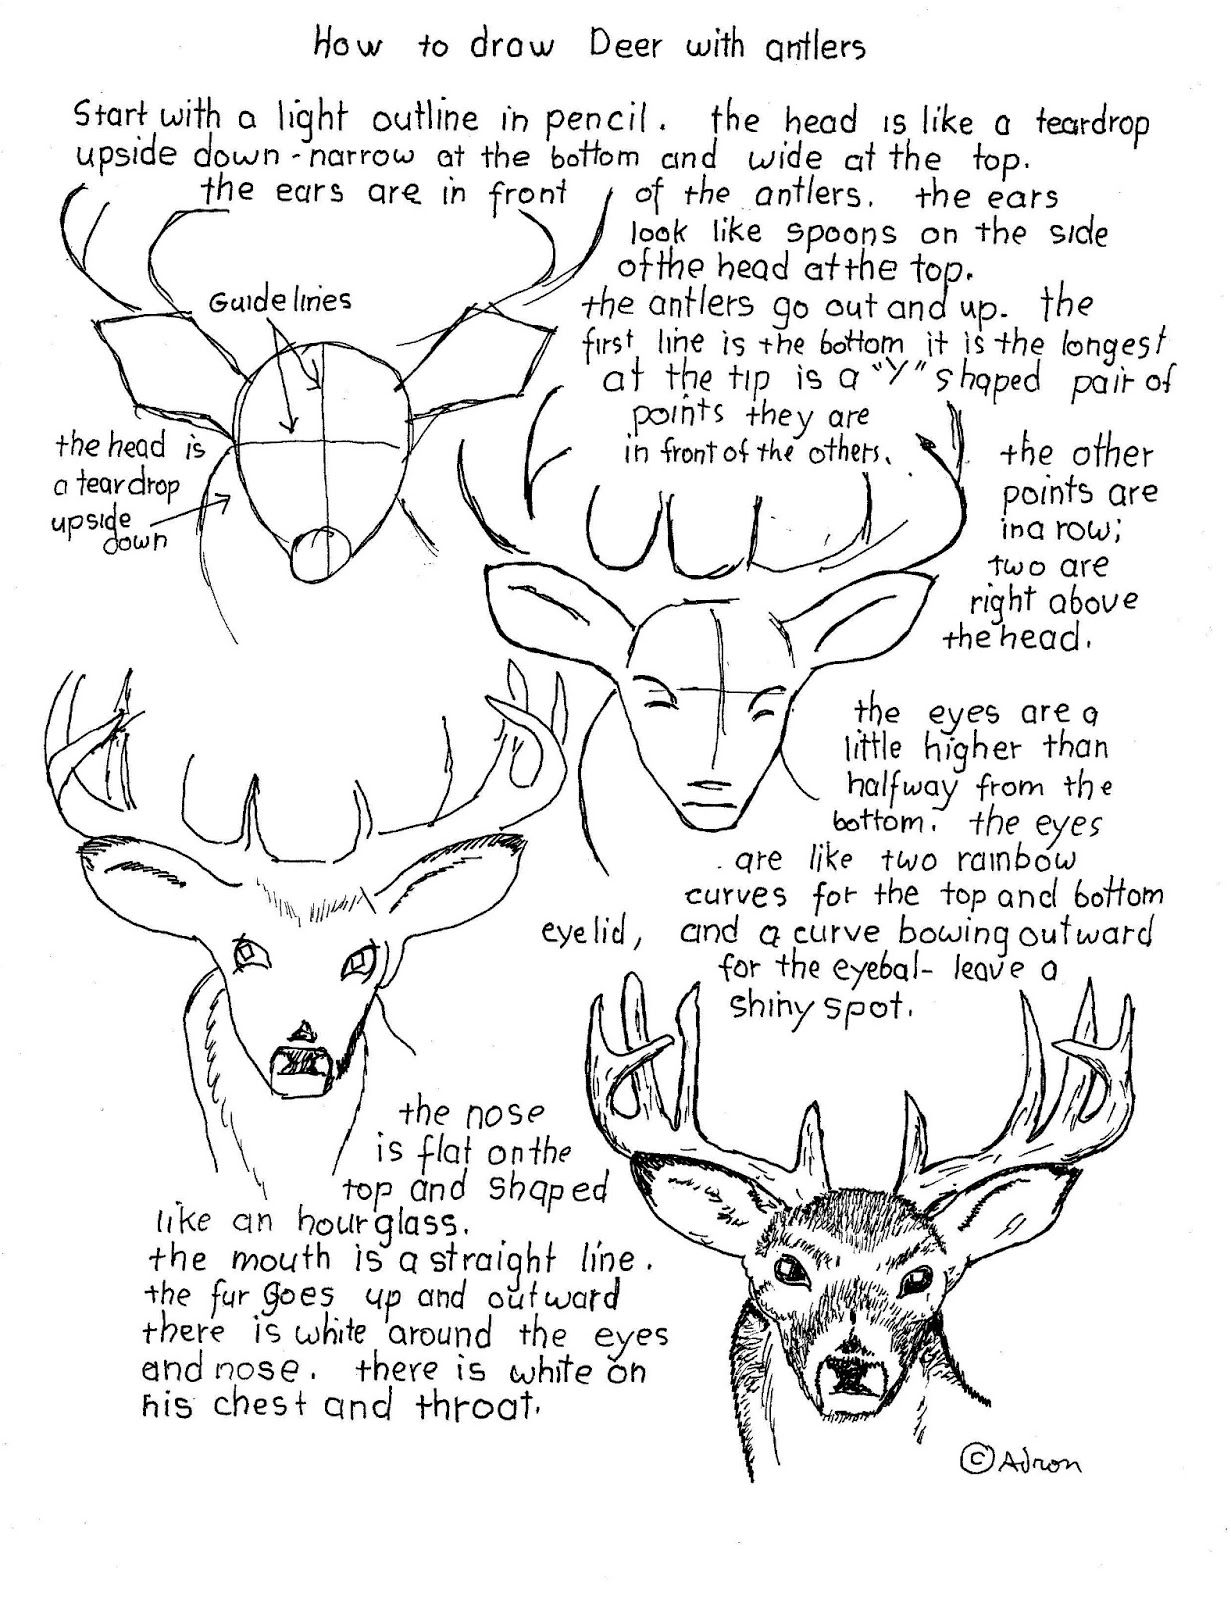 How To Draw A Buck Deer With Antlers